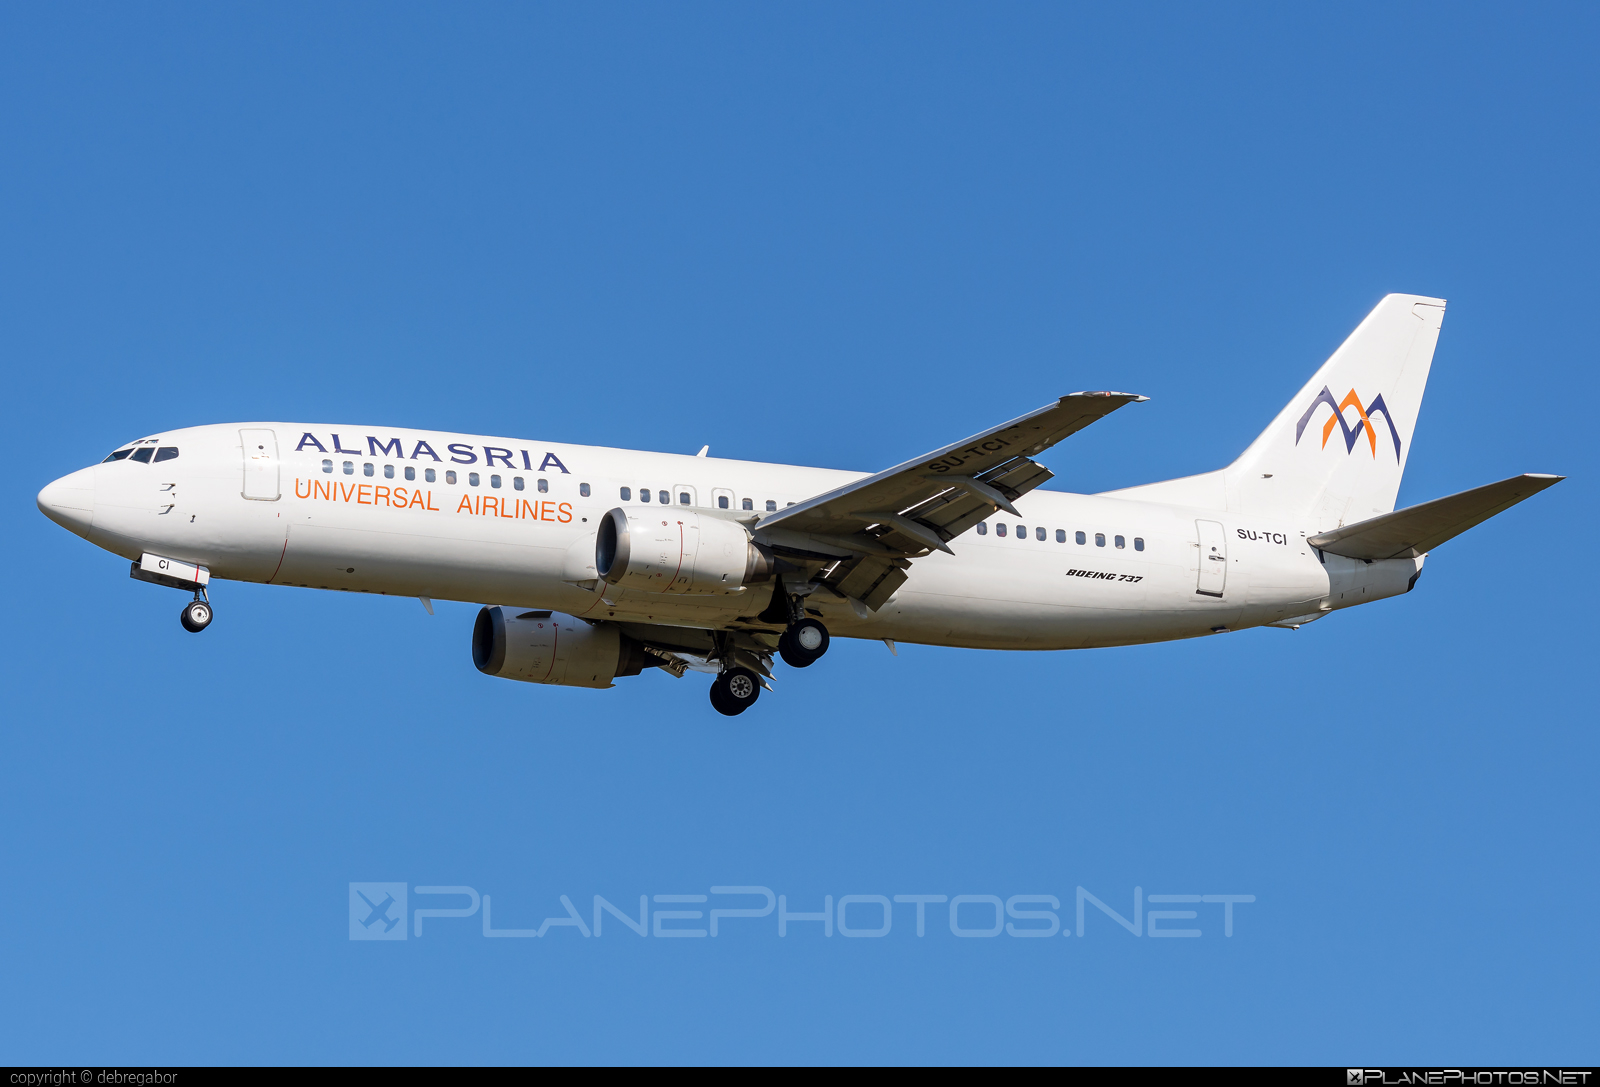 Boeing 737-400 - SU-TCI operated by AlMasria Universal Airlines #almasria #almasriaairlines #almasriauniversal #almasriauniversalairlines #b737 #boeing #boeing737